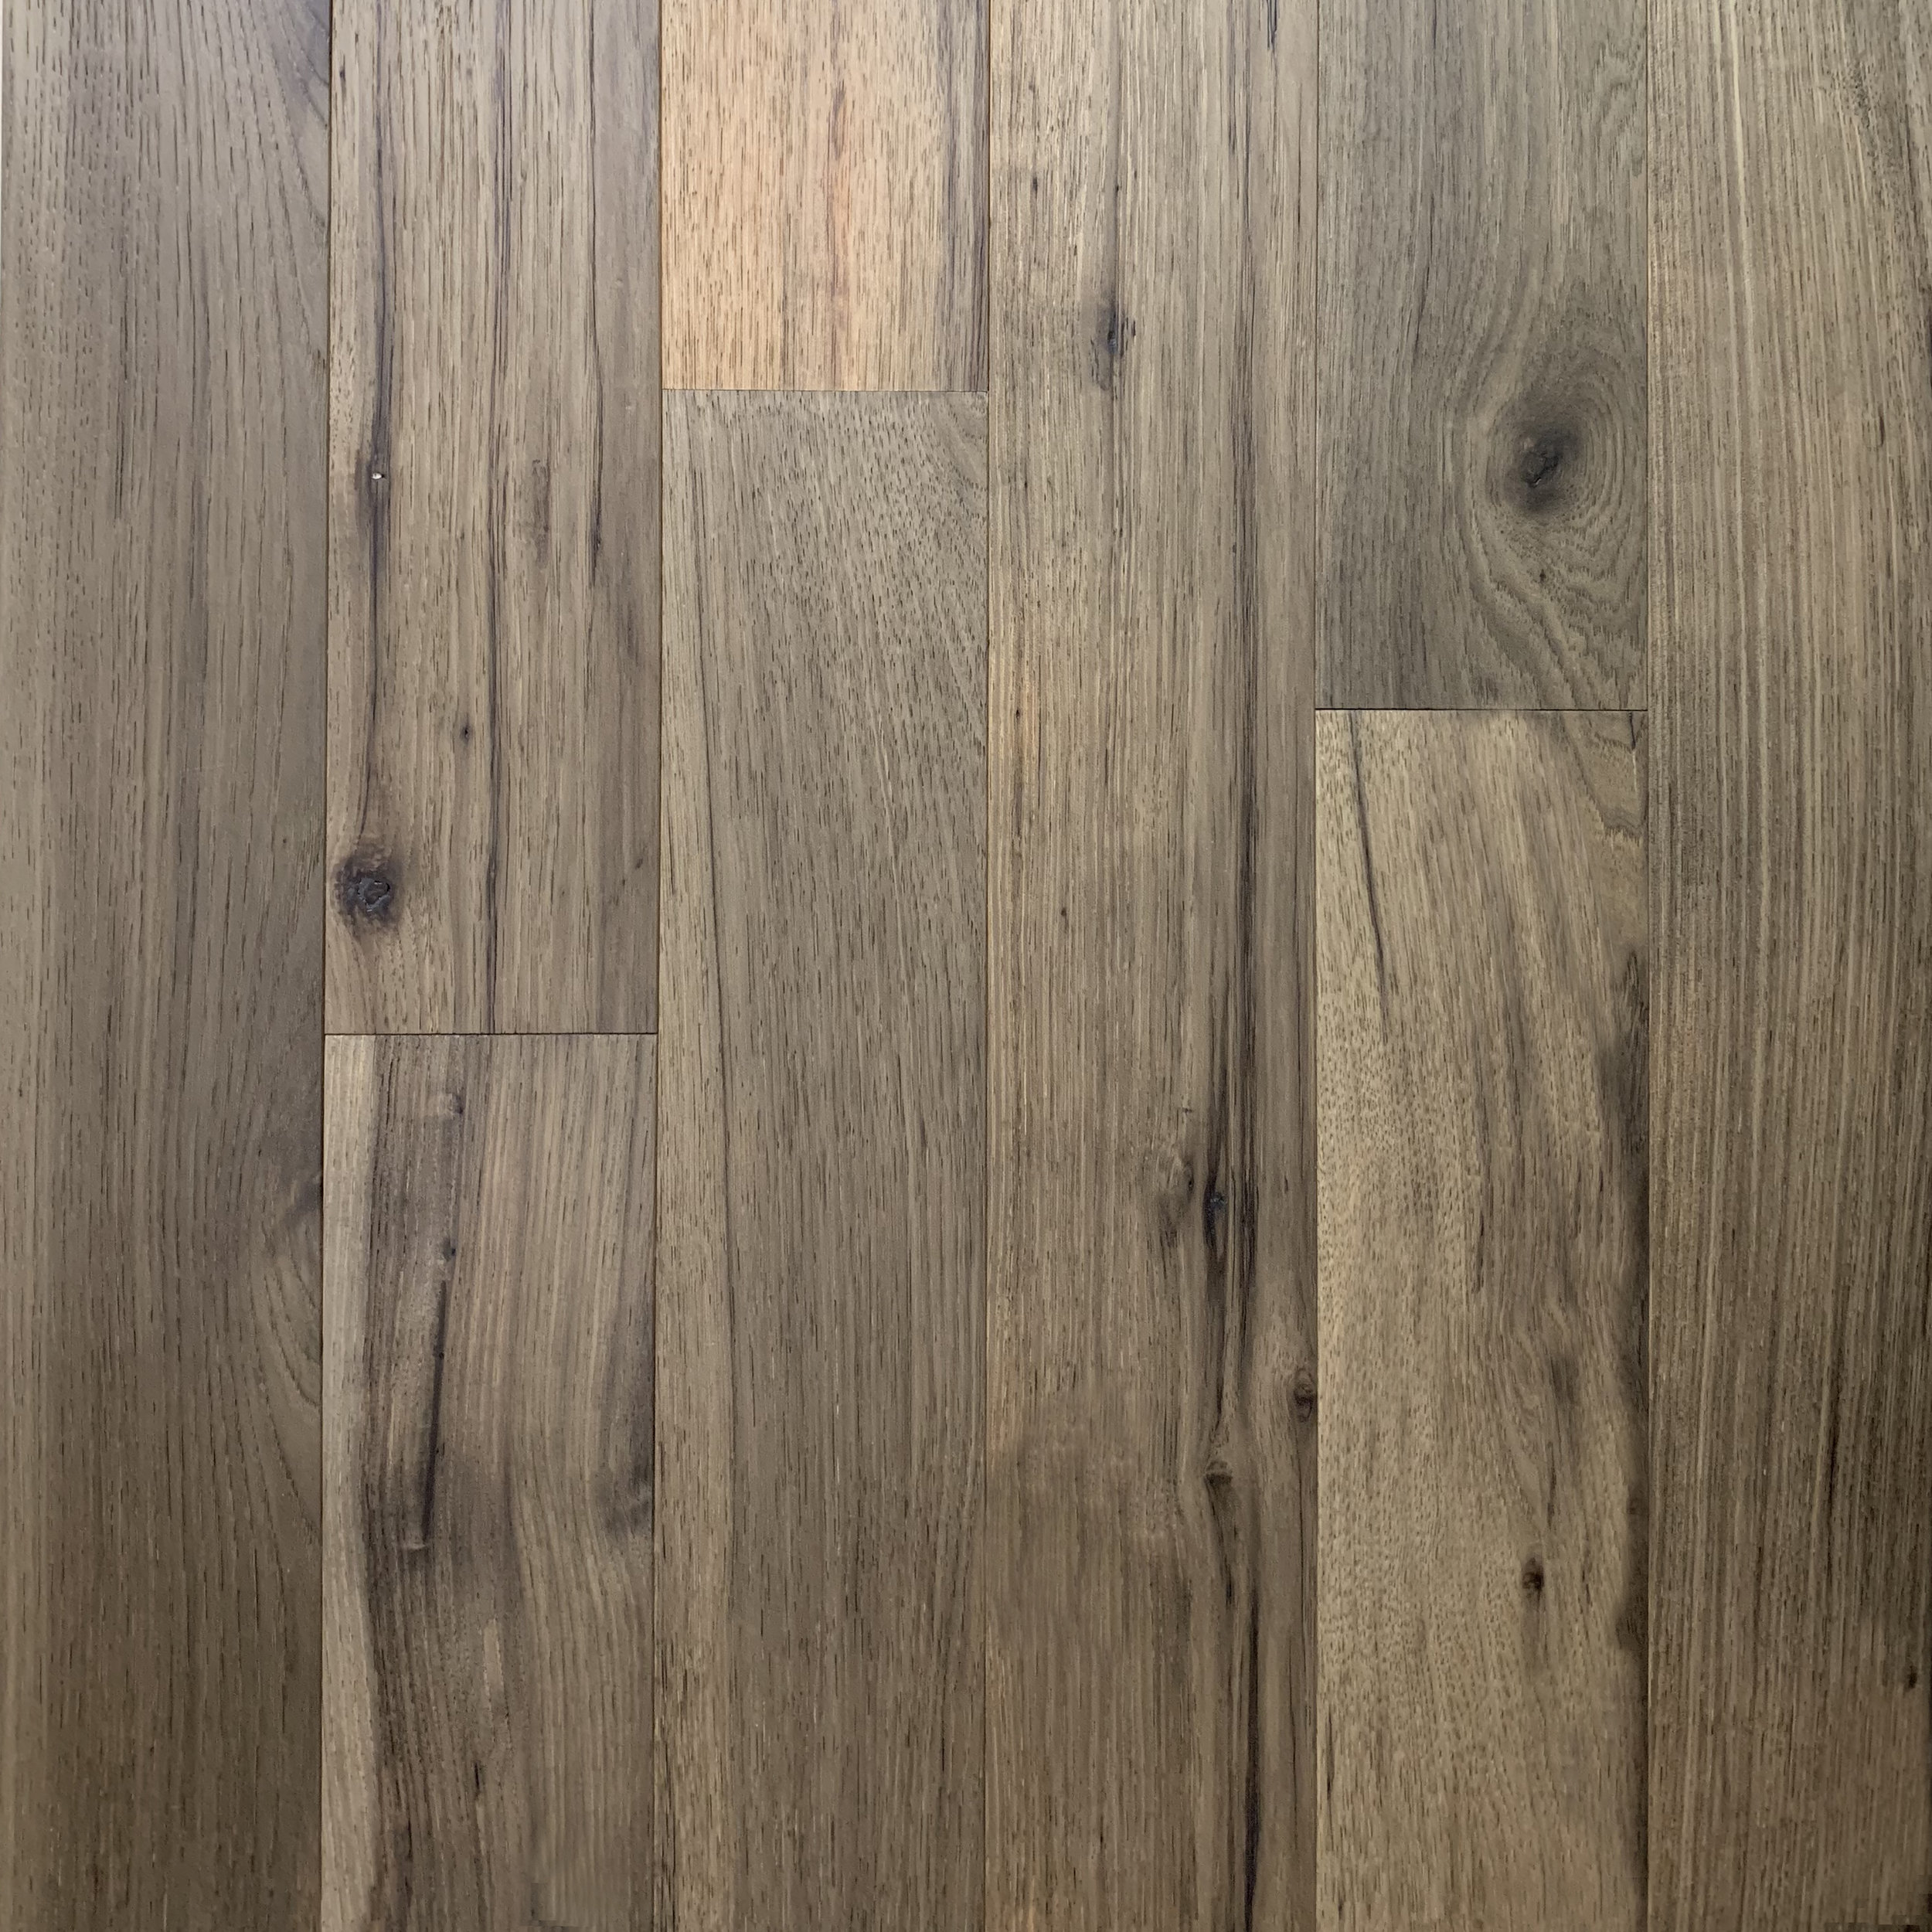 Lafayette Square En Bois Luxury Lifestyle Flooring